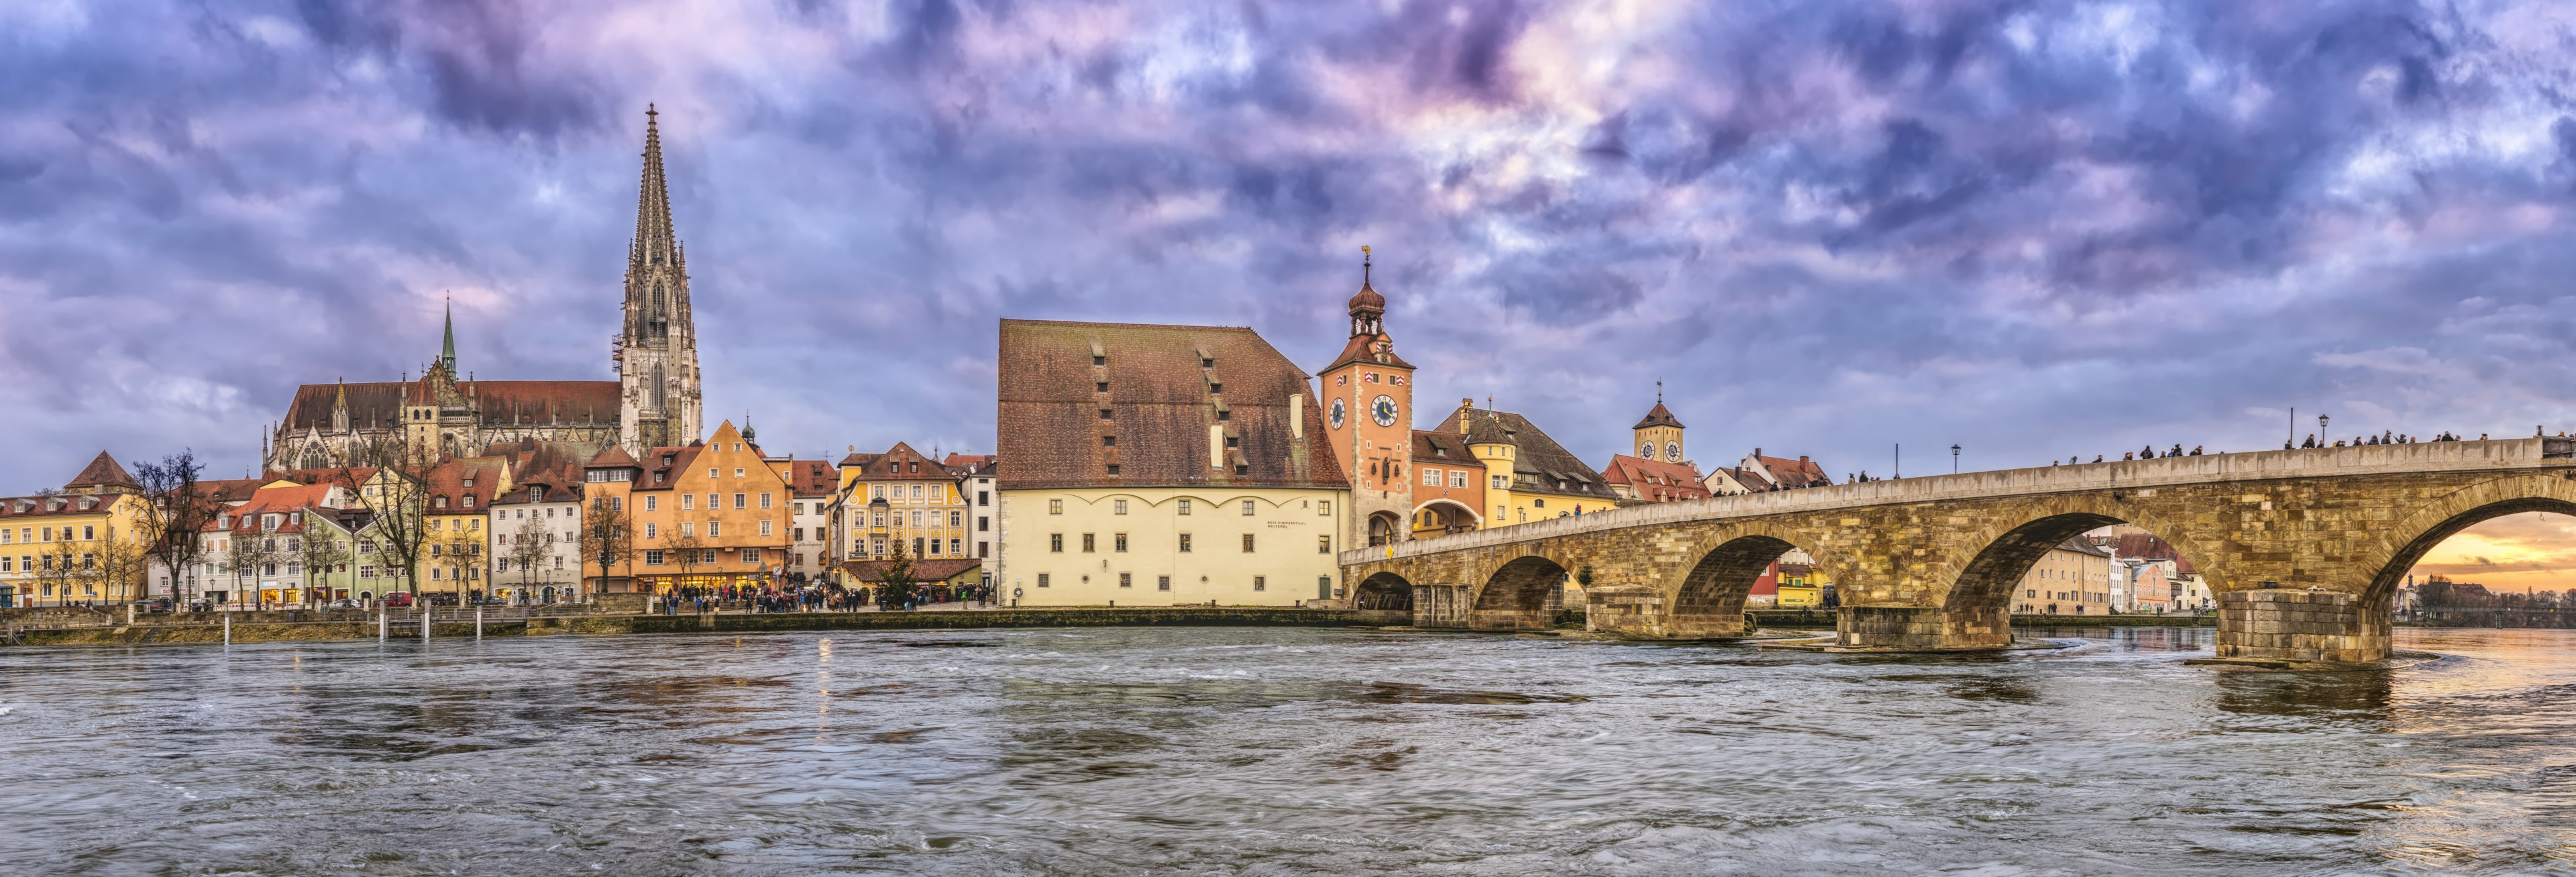 regensburg #stone bridge #dom #regensburg cathedral 4k wallpaper and ...